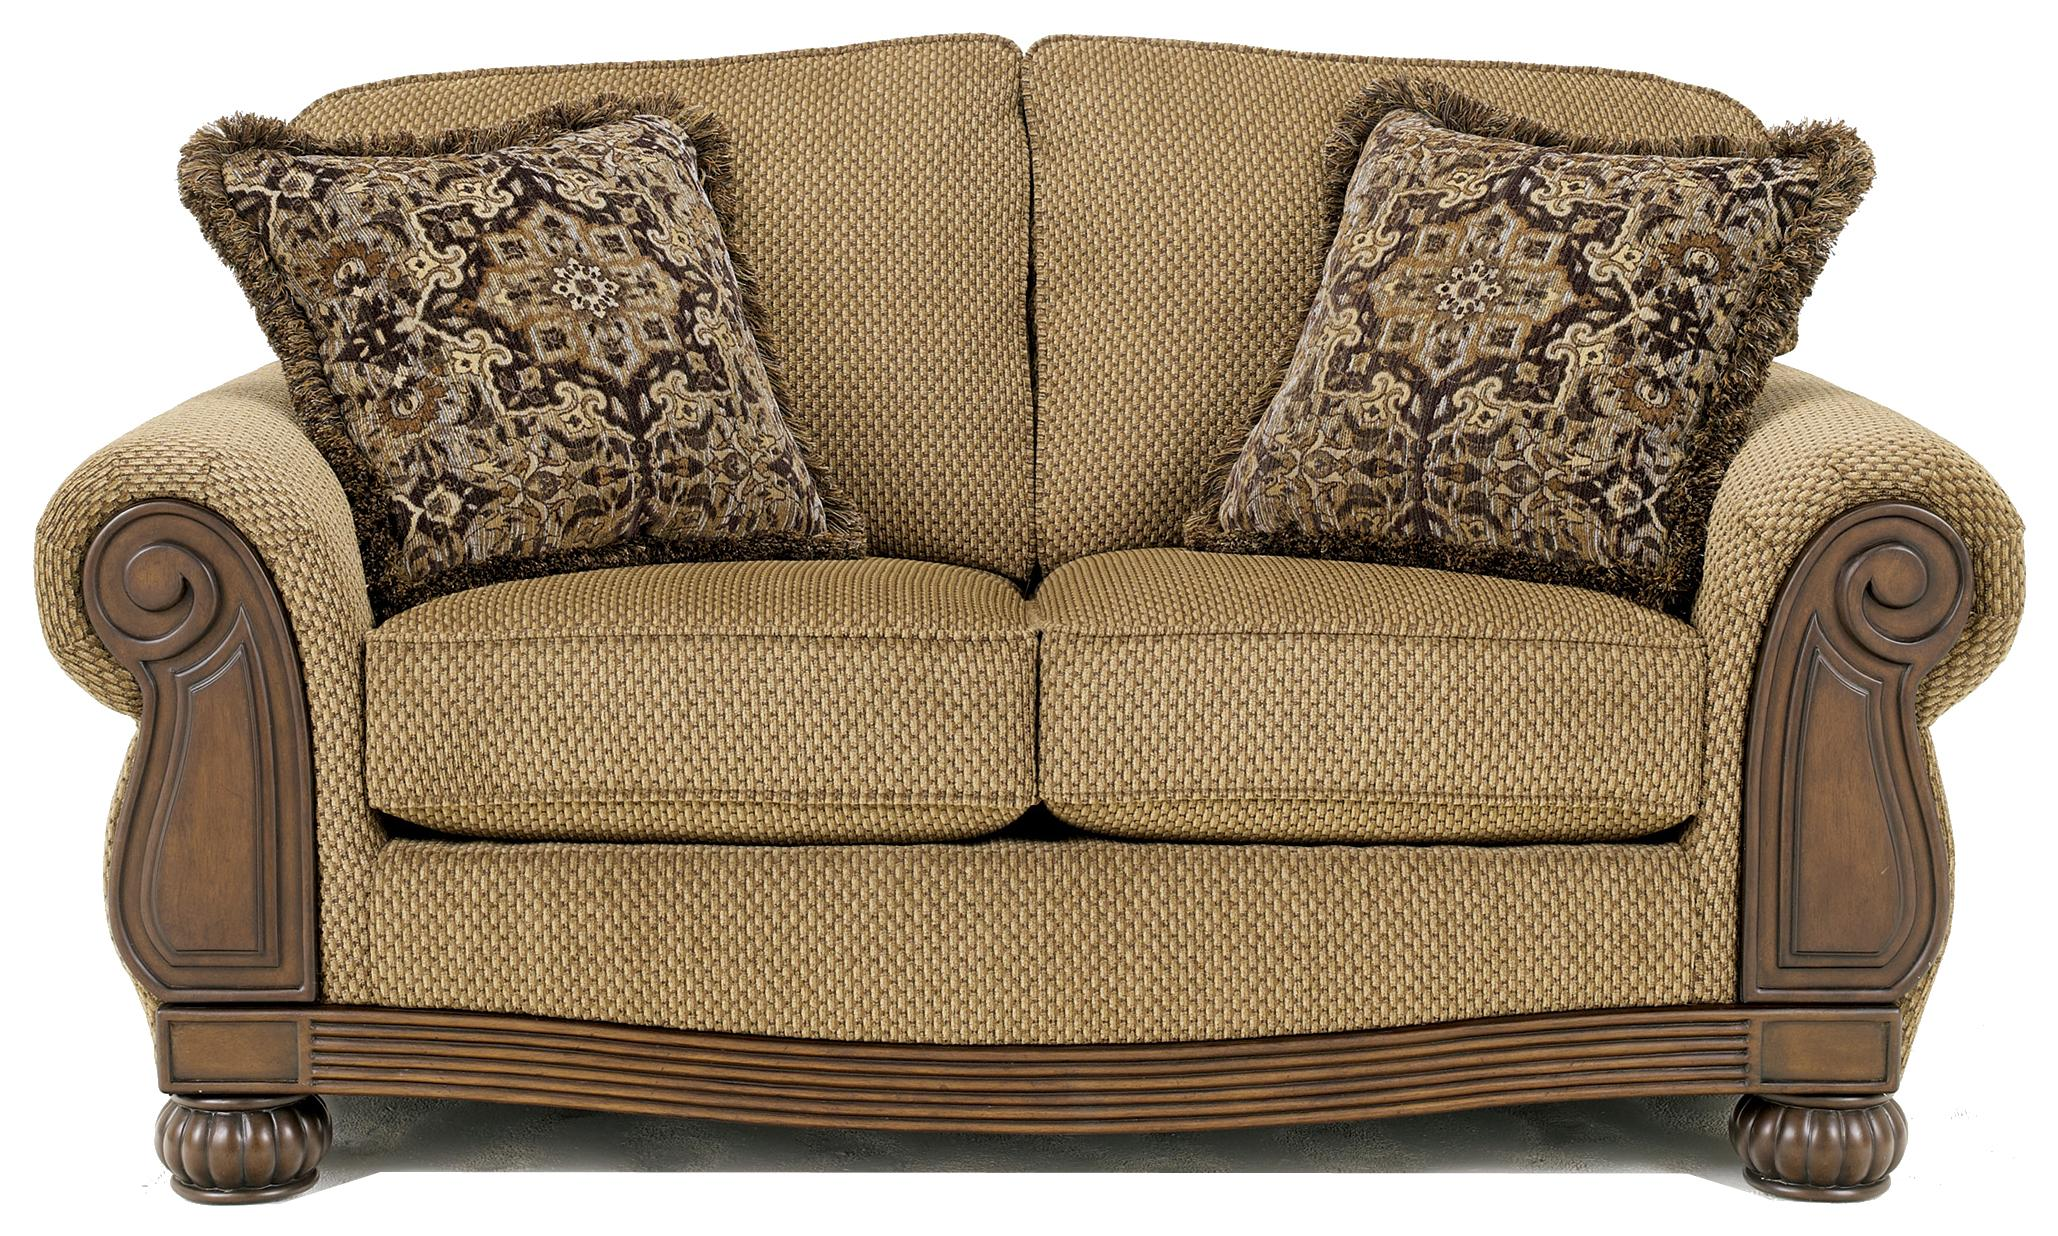 Signature Design by Ashley Lynnwood - Amber Loveseat - Item Number: 6850035